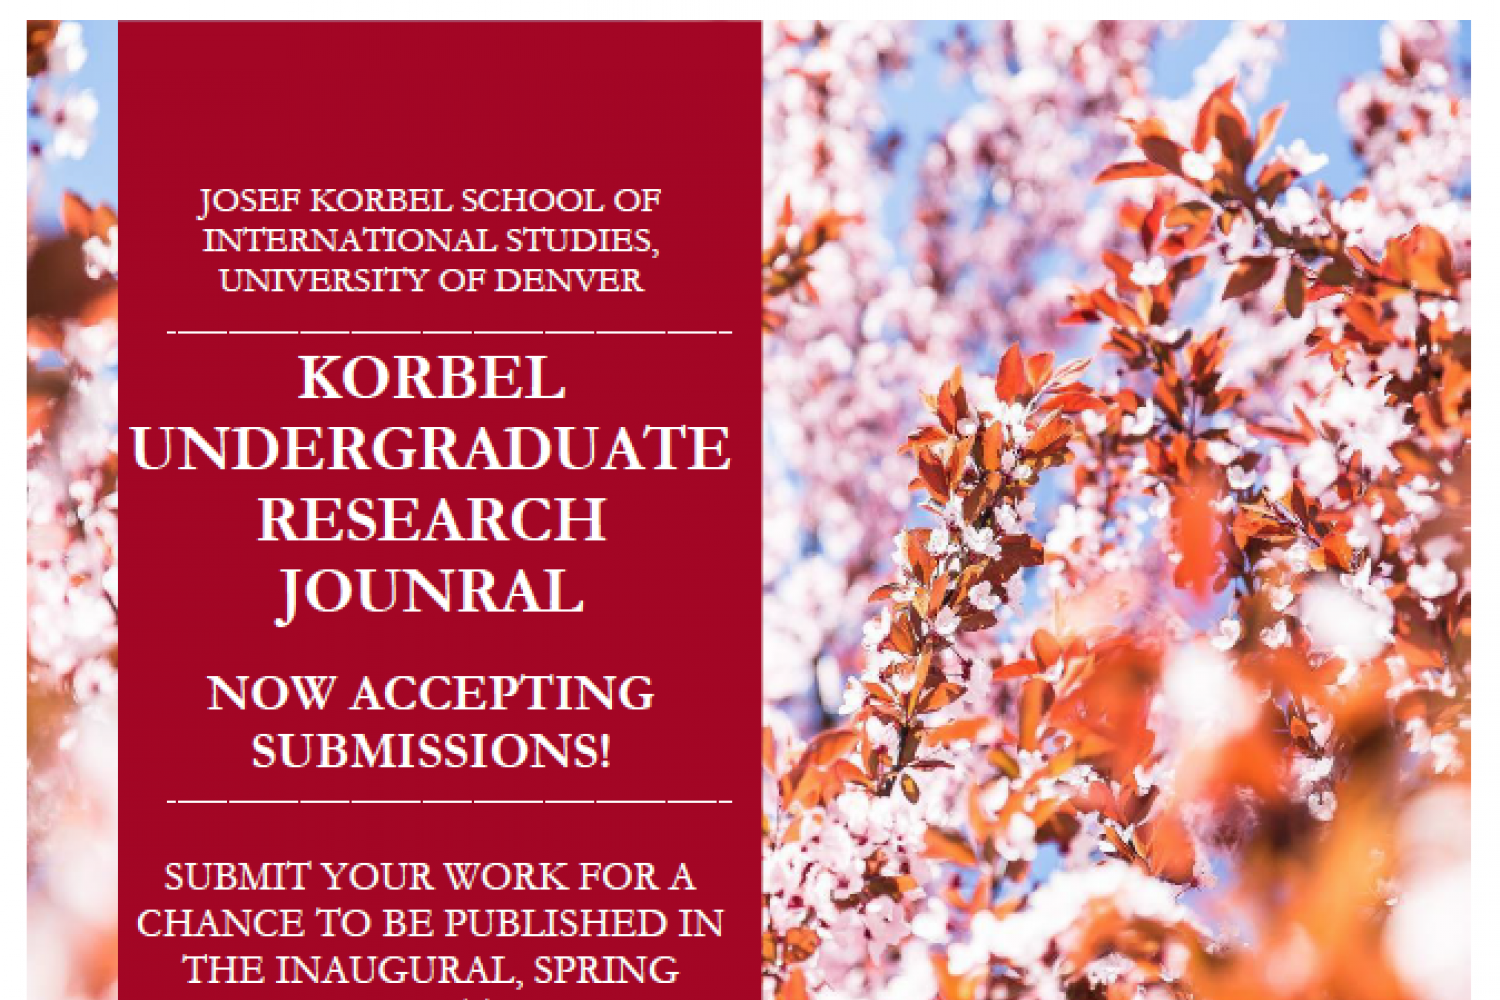 Korbel Undergraduate Resarch Journal Now Accepting Submissions Submit Your work for a chance to be publised in the inaugural spring publication